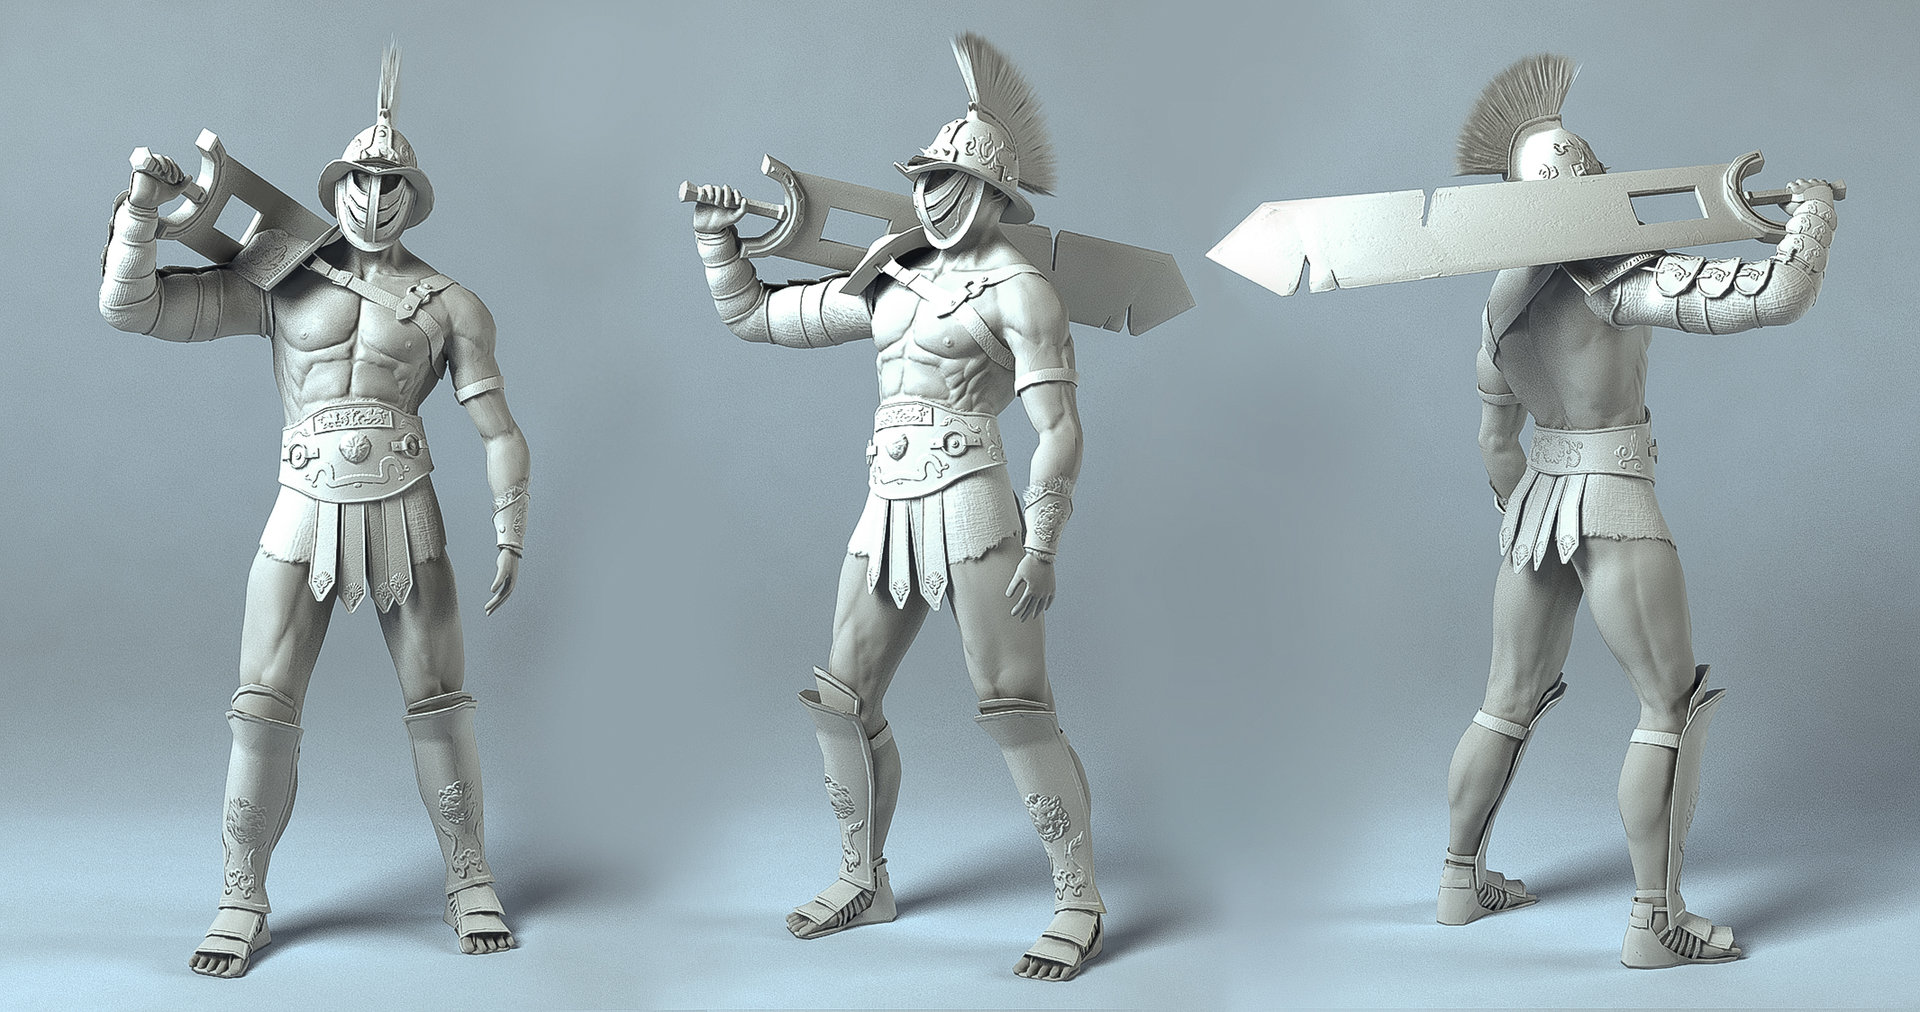 Jian han ng compositing turnaround clay